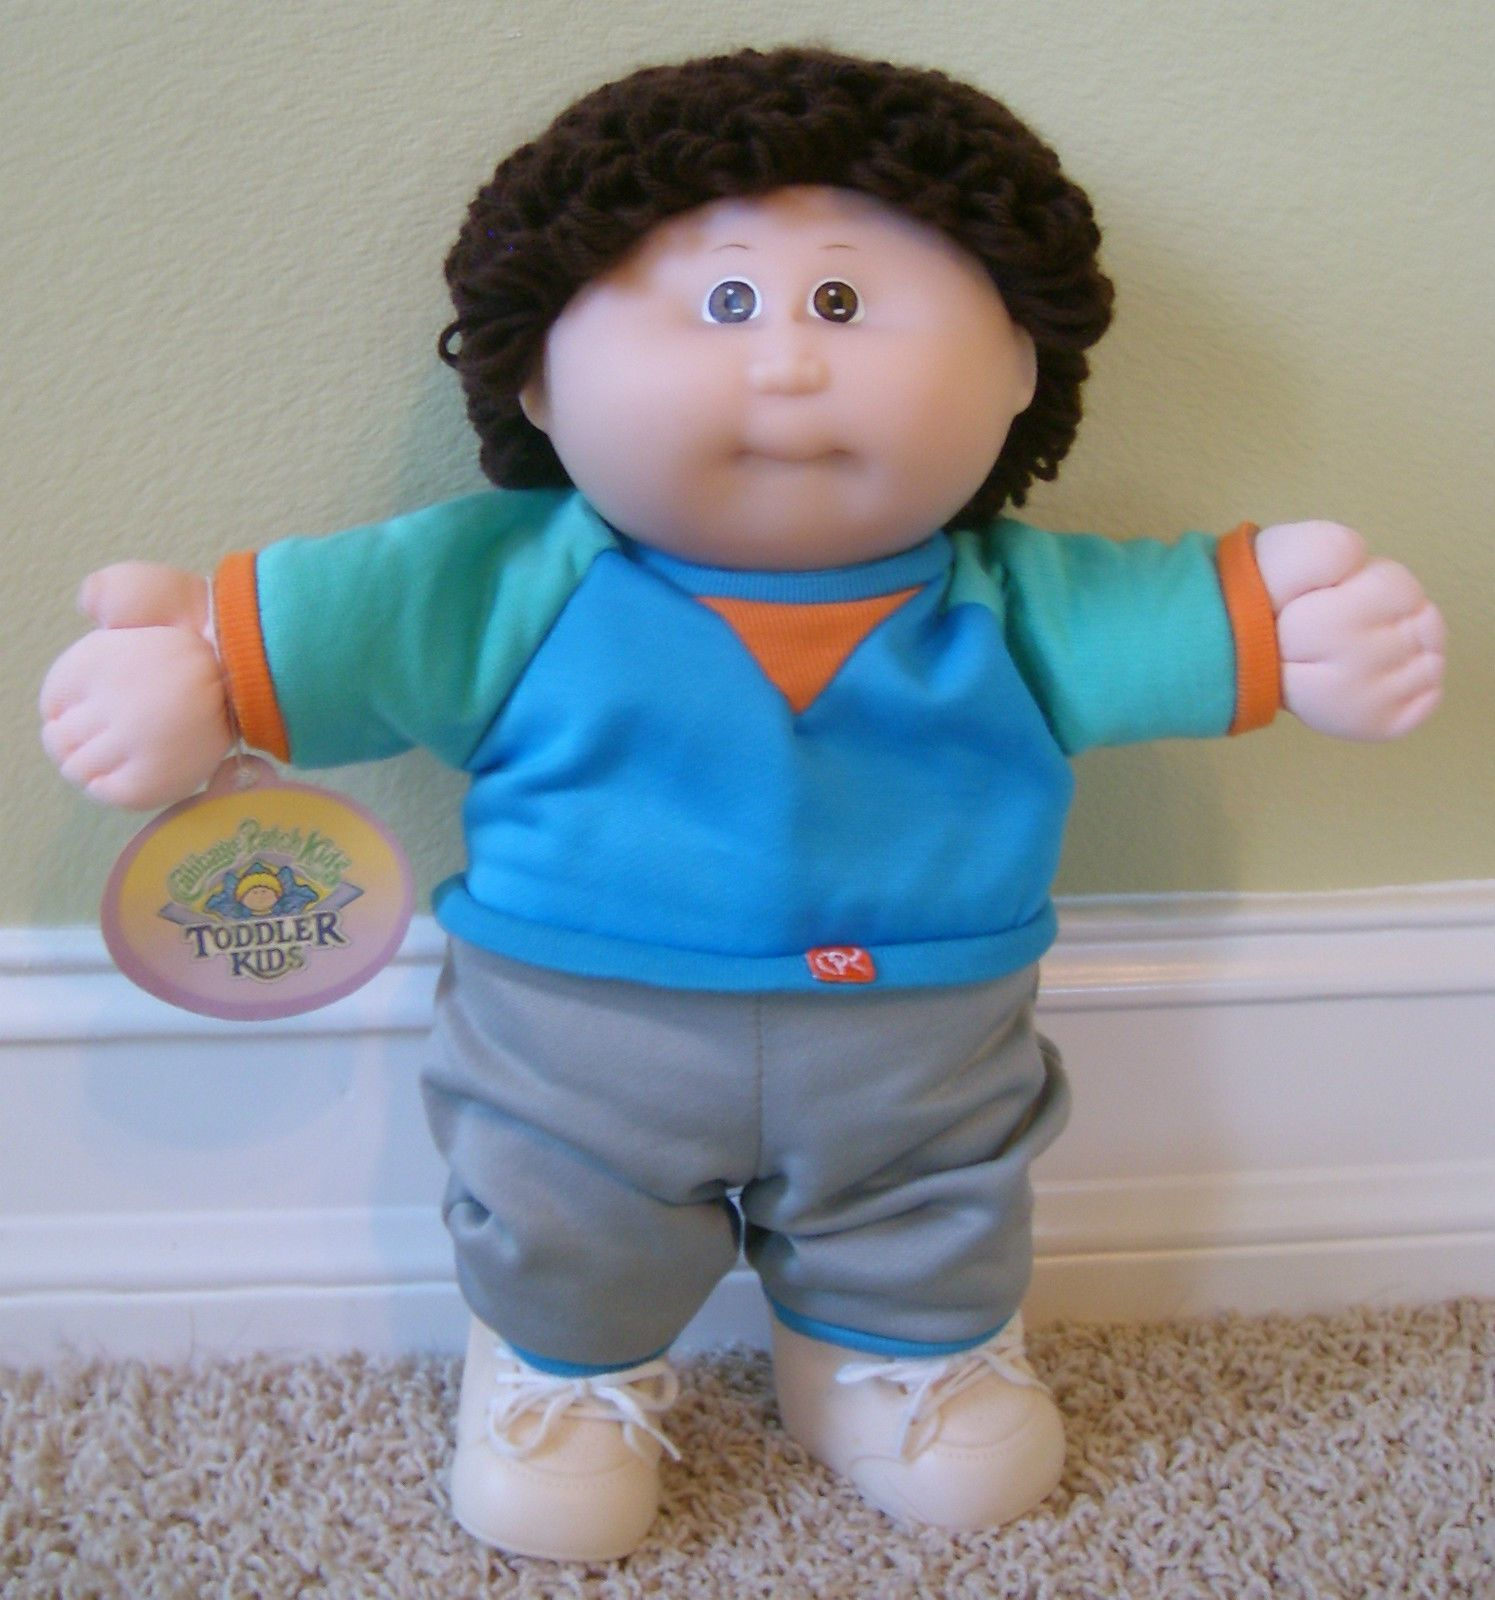 Mib 1988 Cabbage Patch Toddler Kids Boy Brown Eyes Loops W Box Tag Papers Hm1 Cabbage Patch Kids Cabbage Patch Dolls